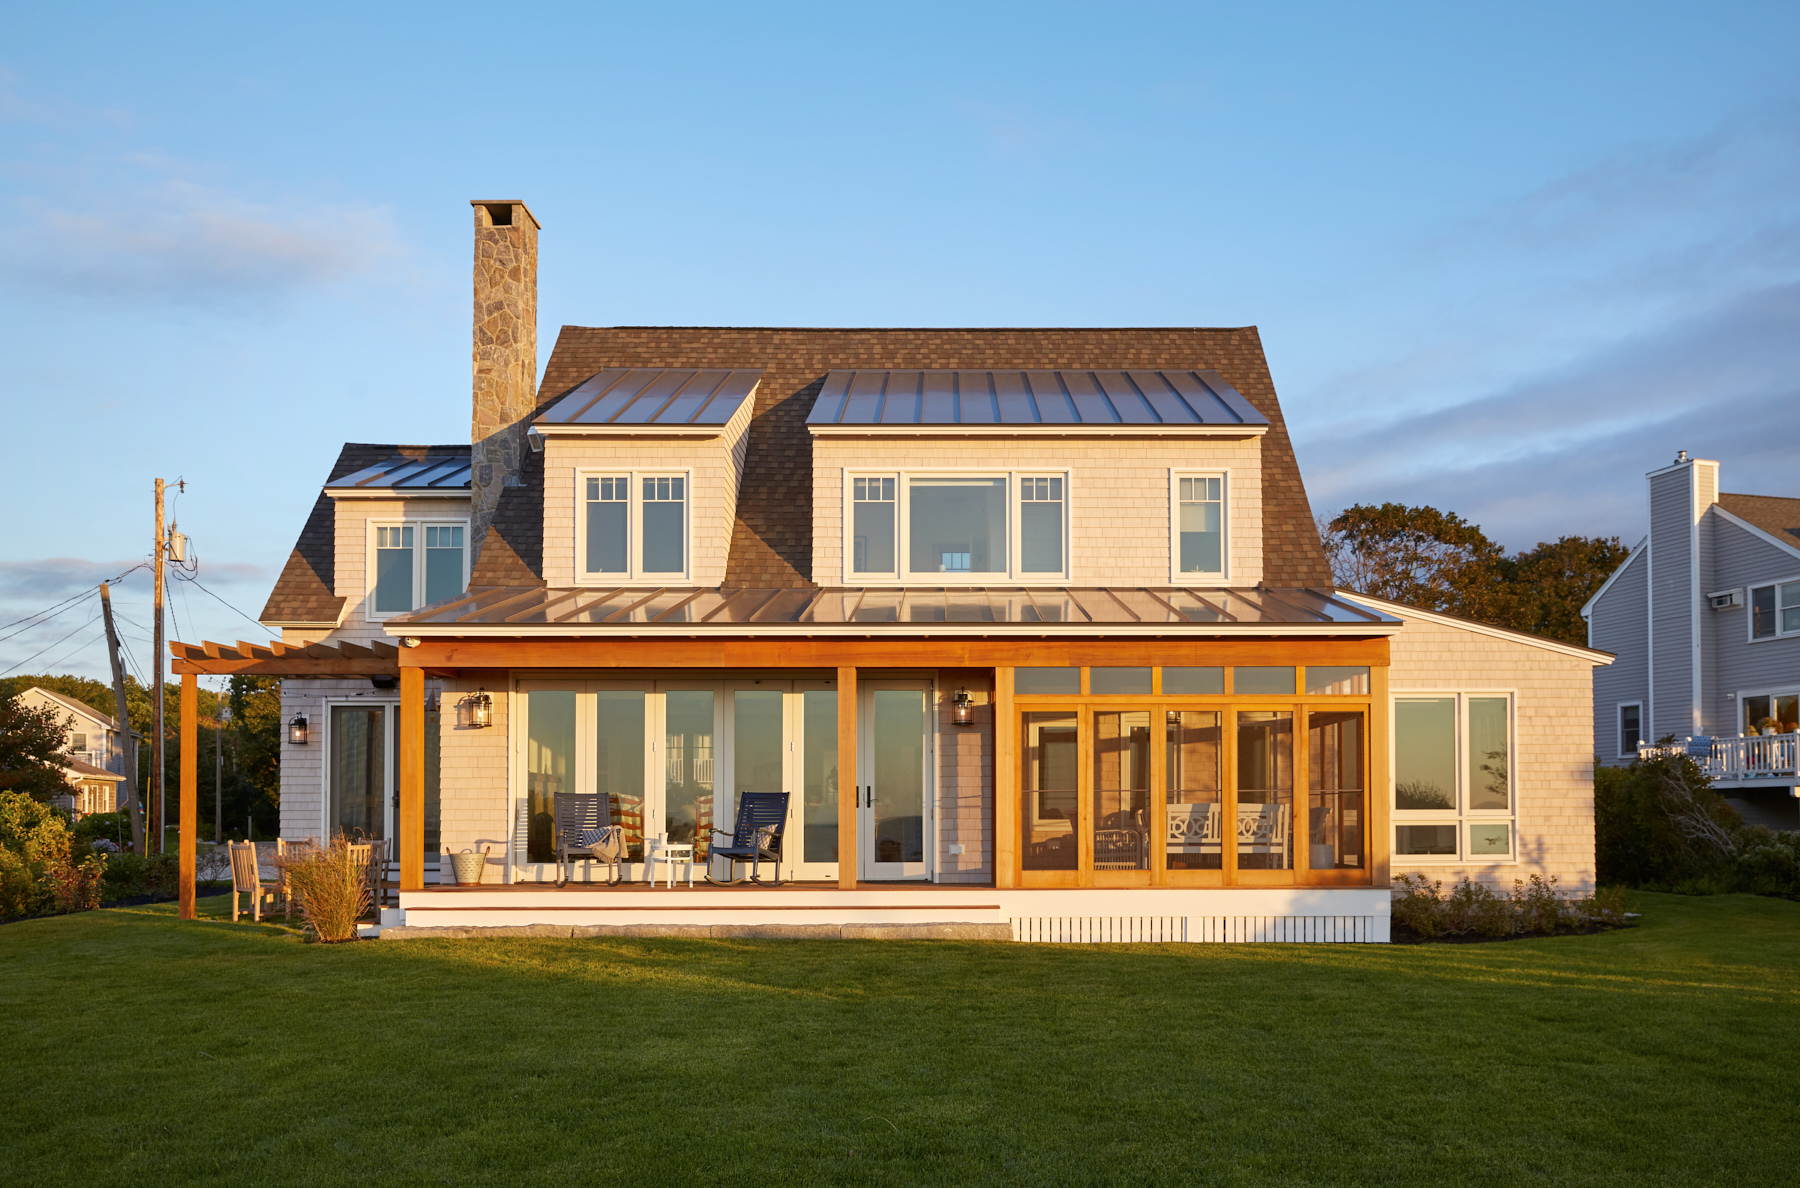 Beachside Lawn, Custom Home Construction in Southern Maine